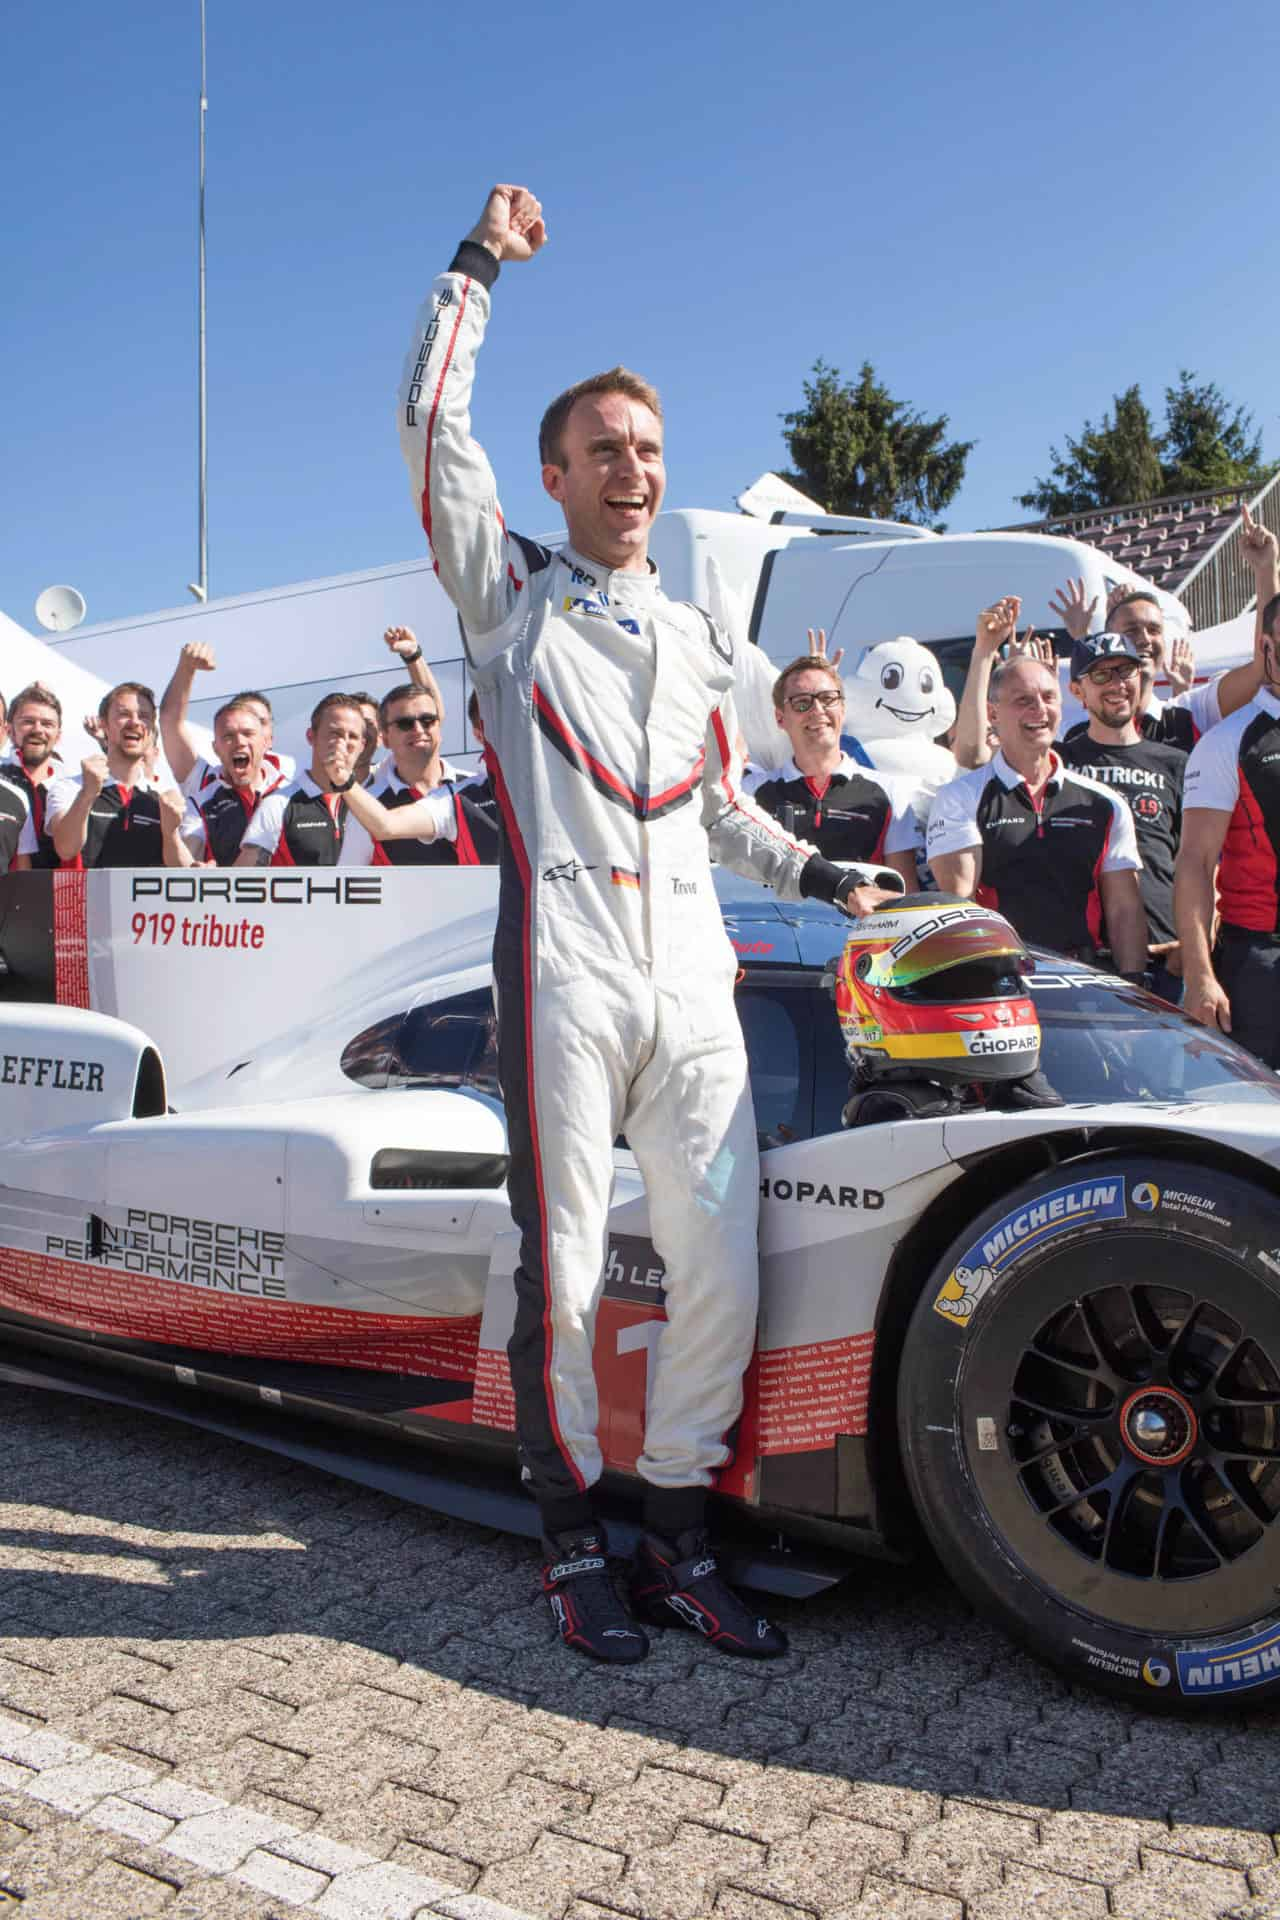 Chopard proud to be associated with Porsche Motorsport and Timo Bernhard in setting a new lap record